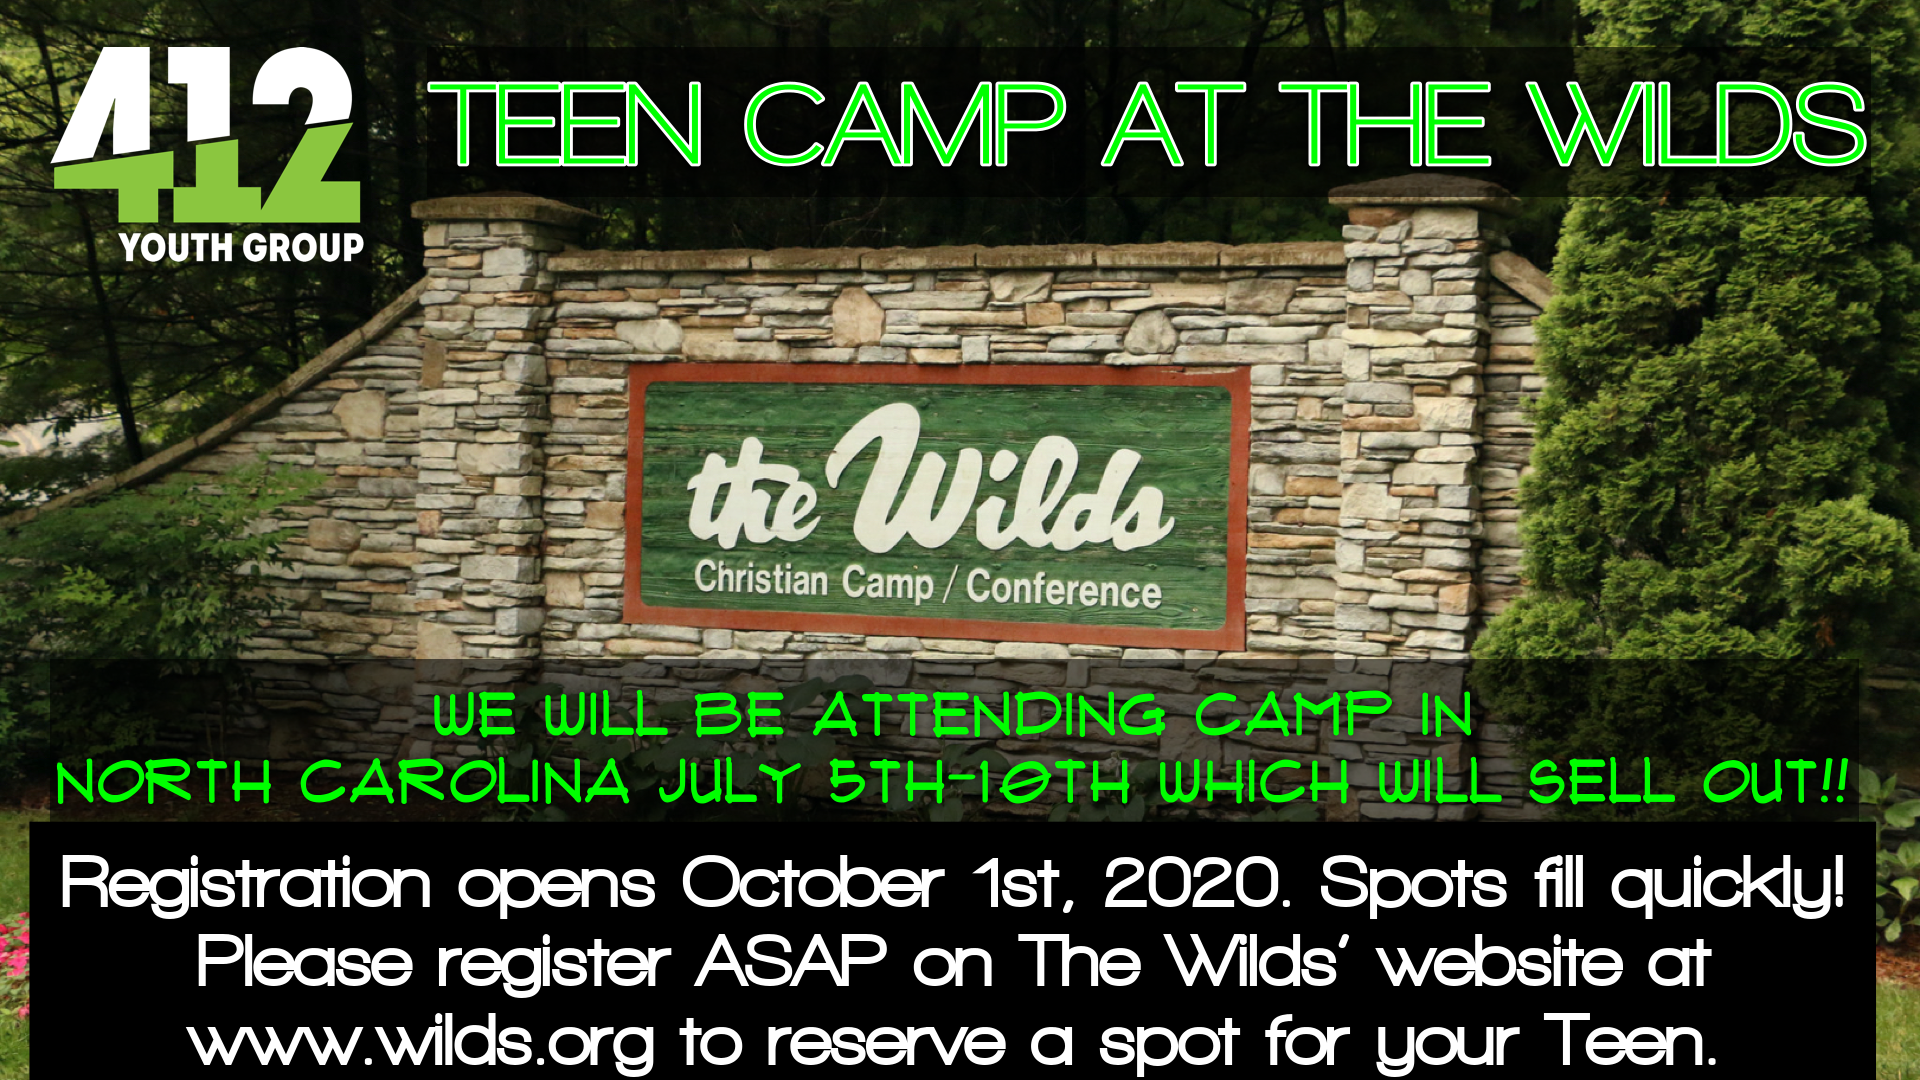 Teen Camp Registration Opening